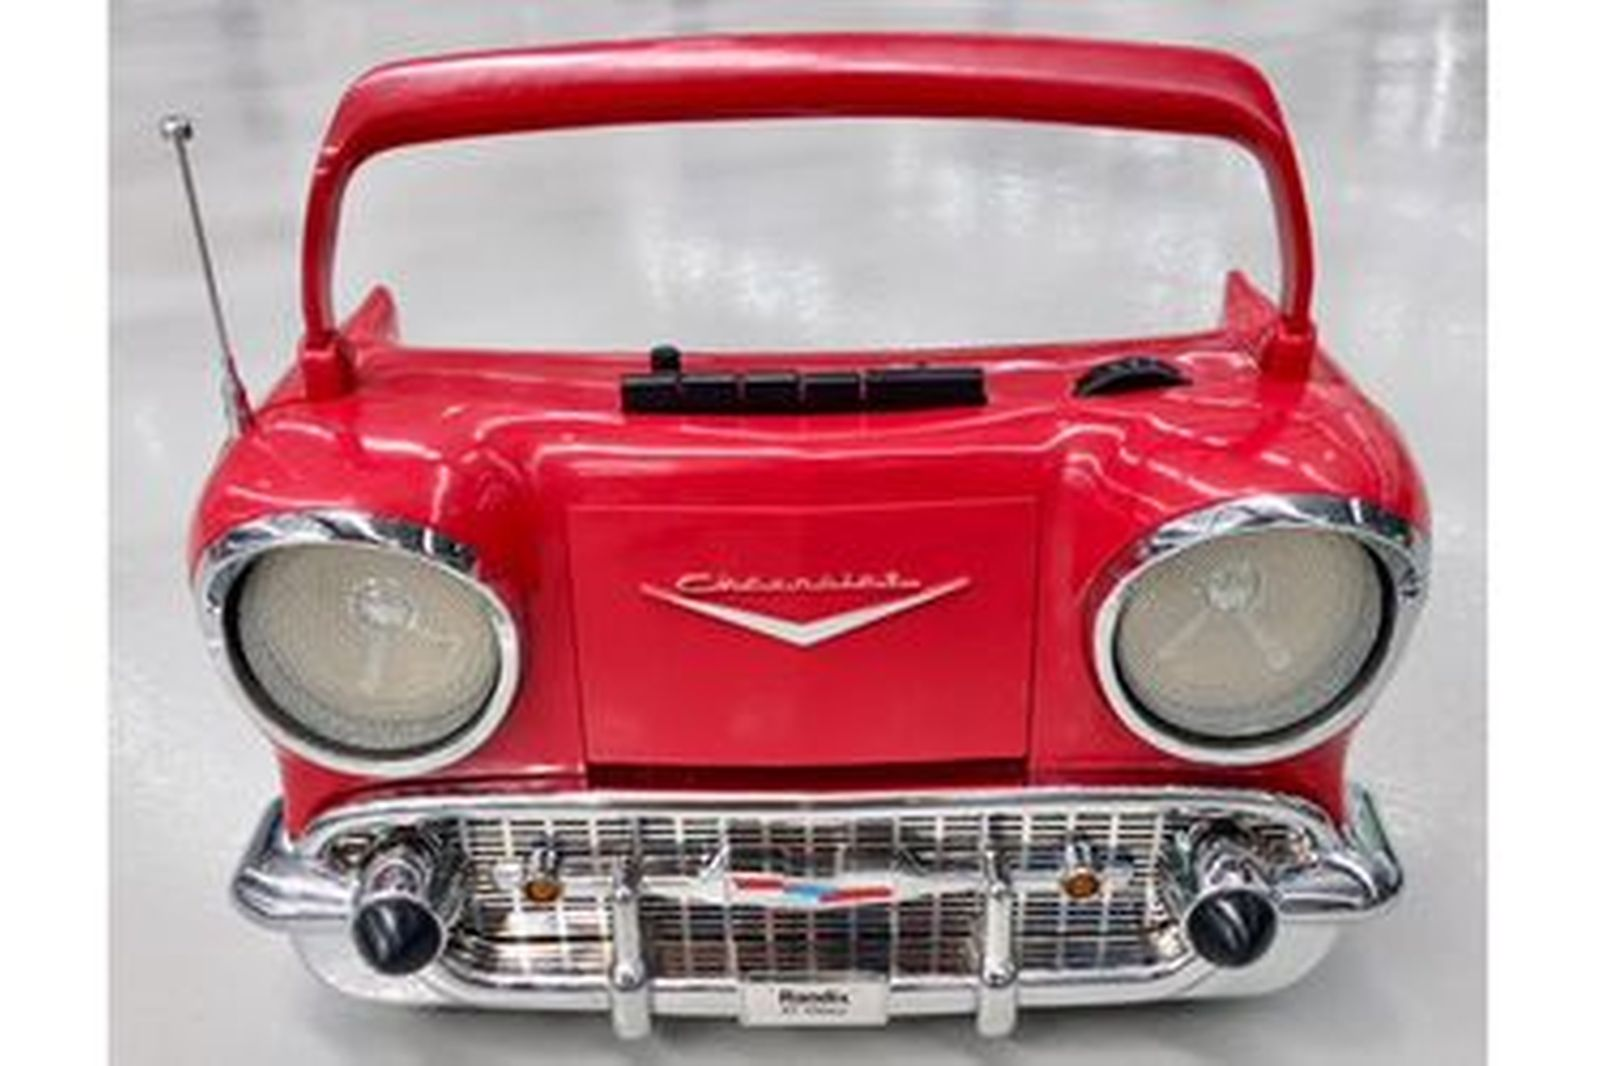 Red 1957 Chevrolet radio Cassette no charger